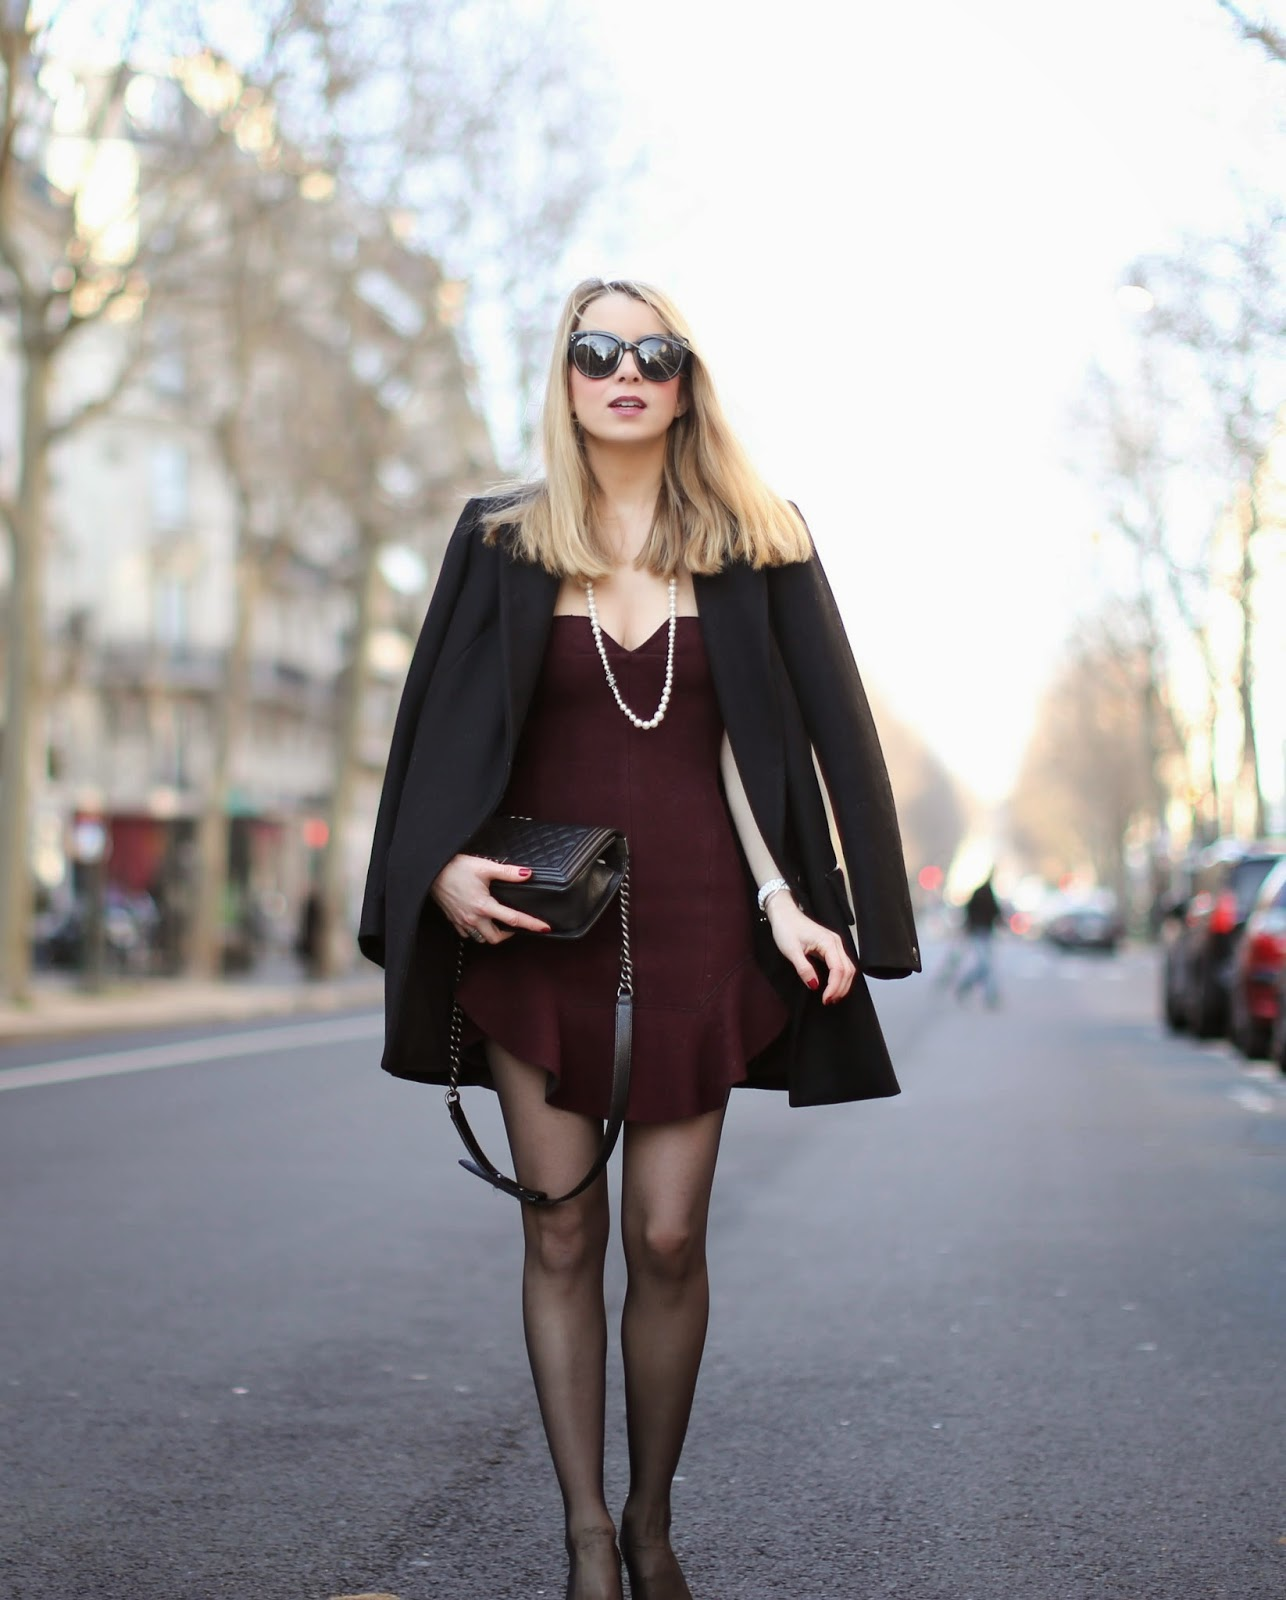 isabel marant, mycouturecorner, ragandbone, chanel, louboutin, streetstyle, new year's eve, fashion blogger, paris